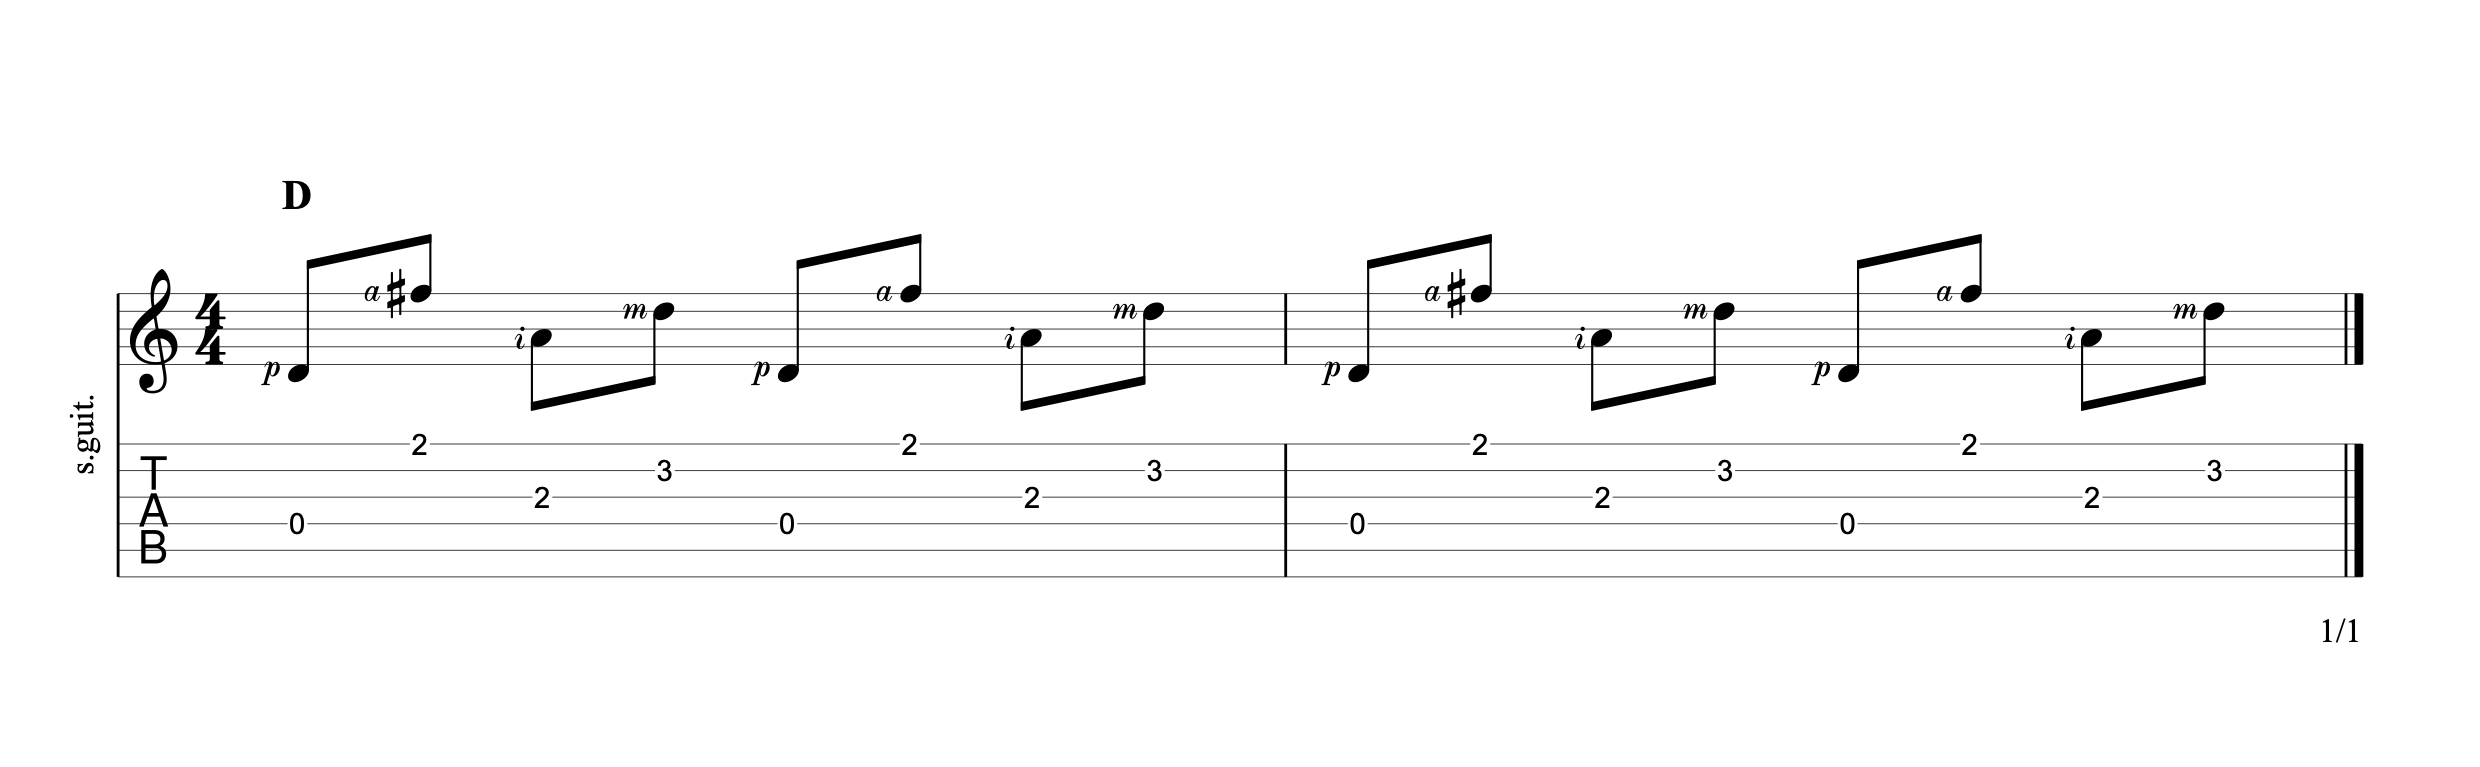 Fingerpicking Chords p9